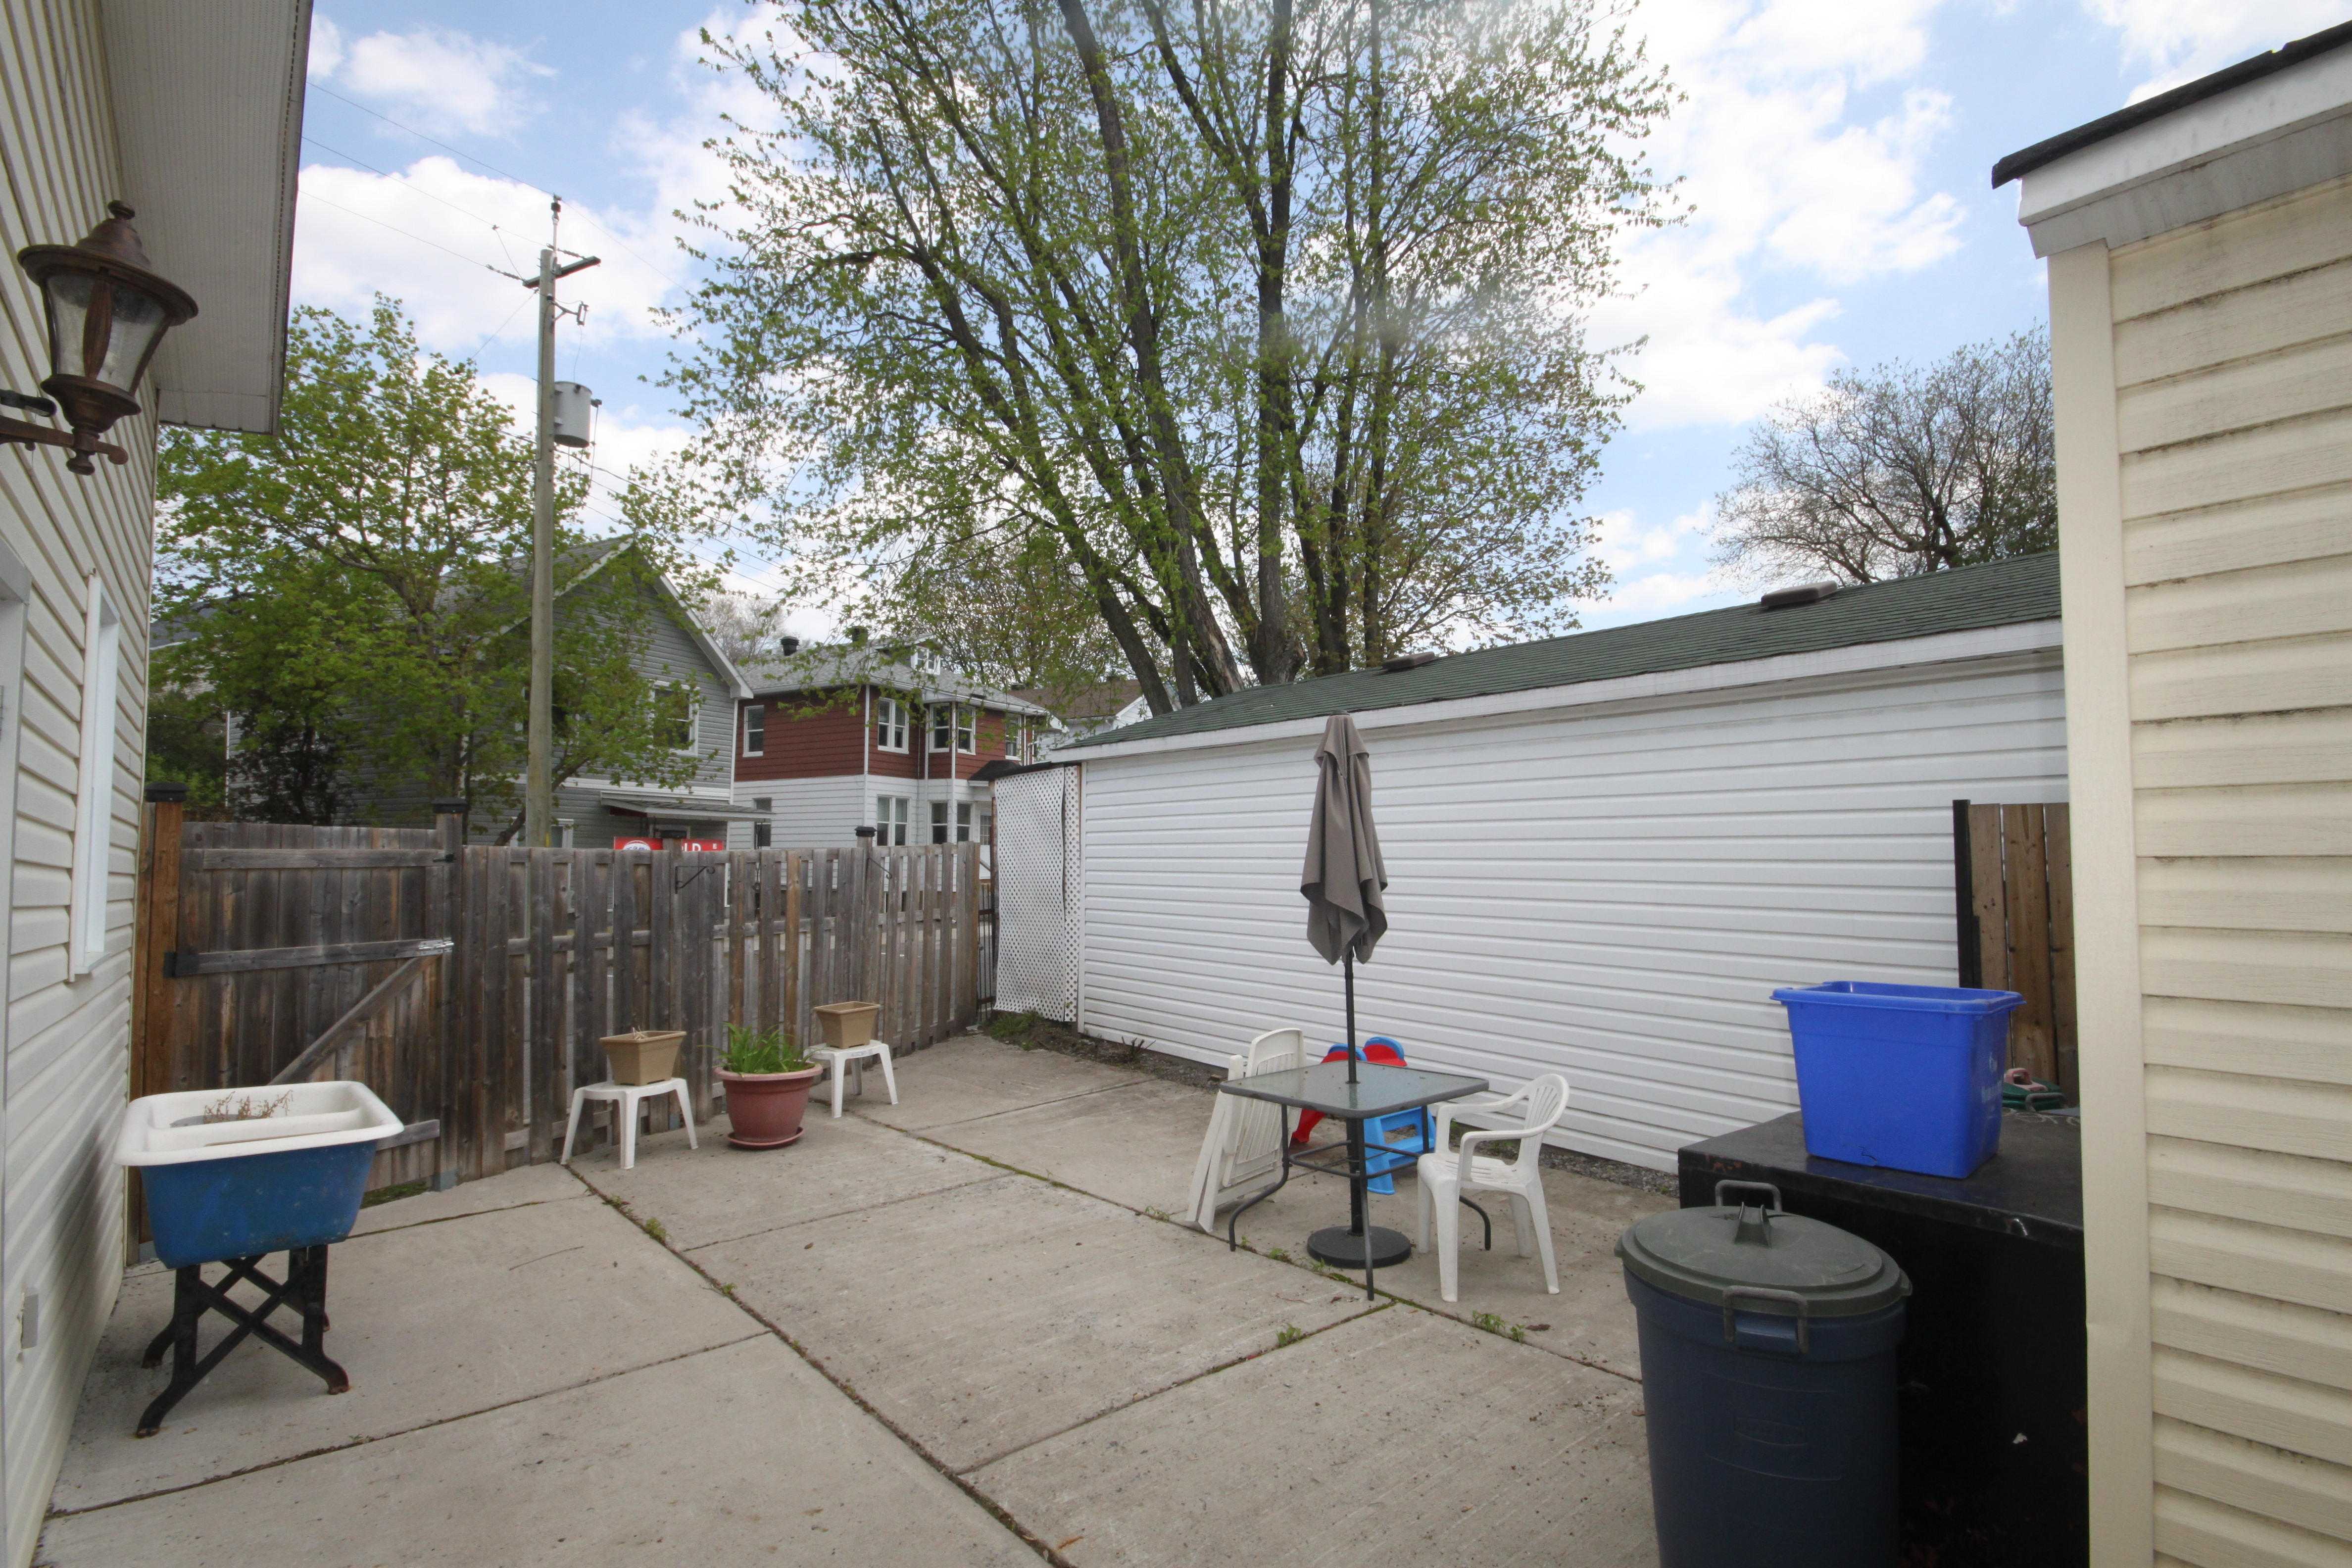 Fantastic opportunity to pick up a great investment property.  Fully legal Duplex that fronts on two separate streets.  Zoned R5D H(25) 2 Great out buildings as well.